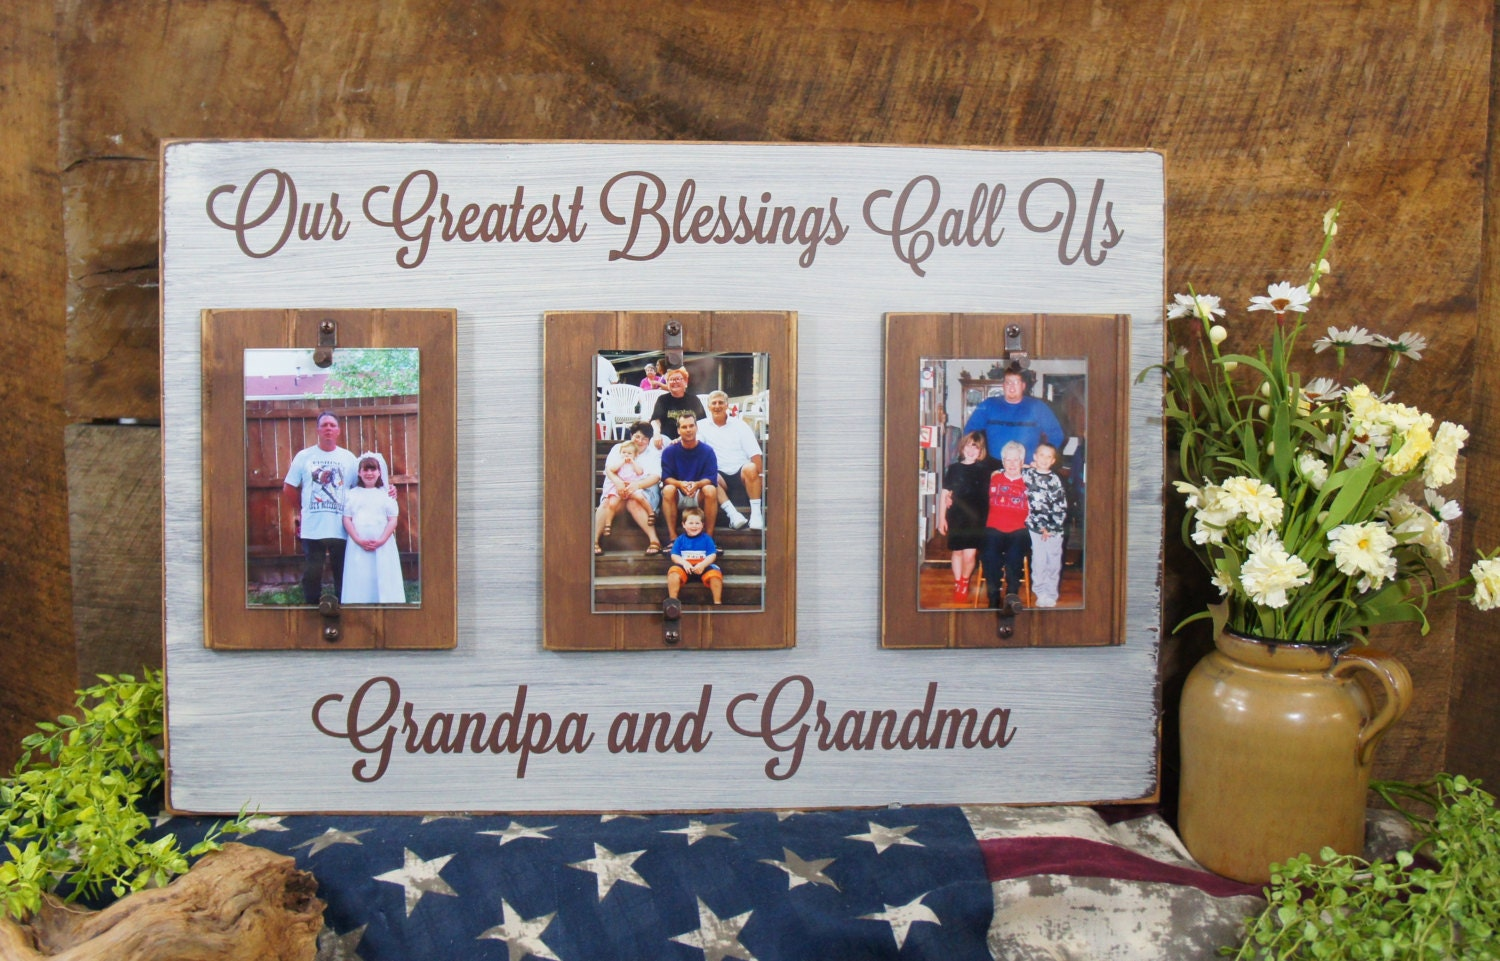 our greatest blessings call us grandpa grandma rustic style picture frame for grandparents saying 16x24 4x6 photos word changes are free